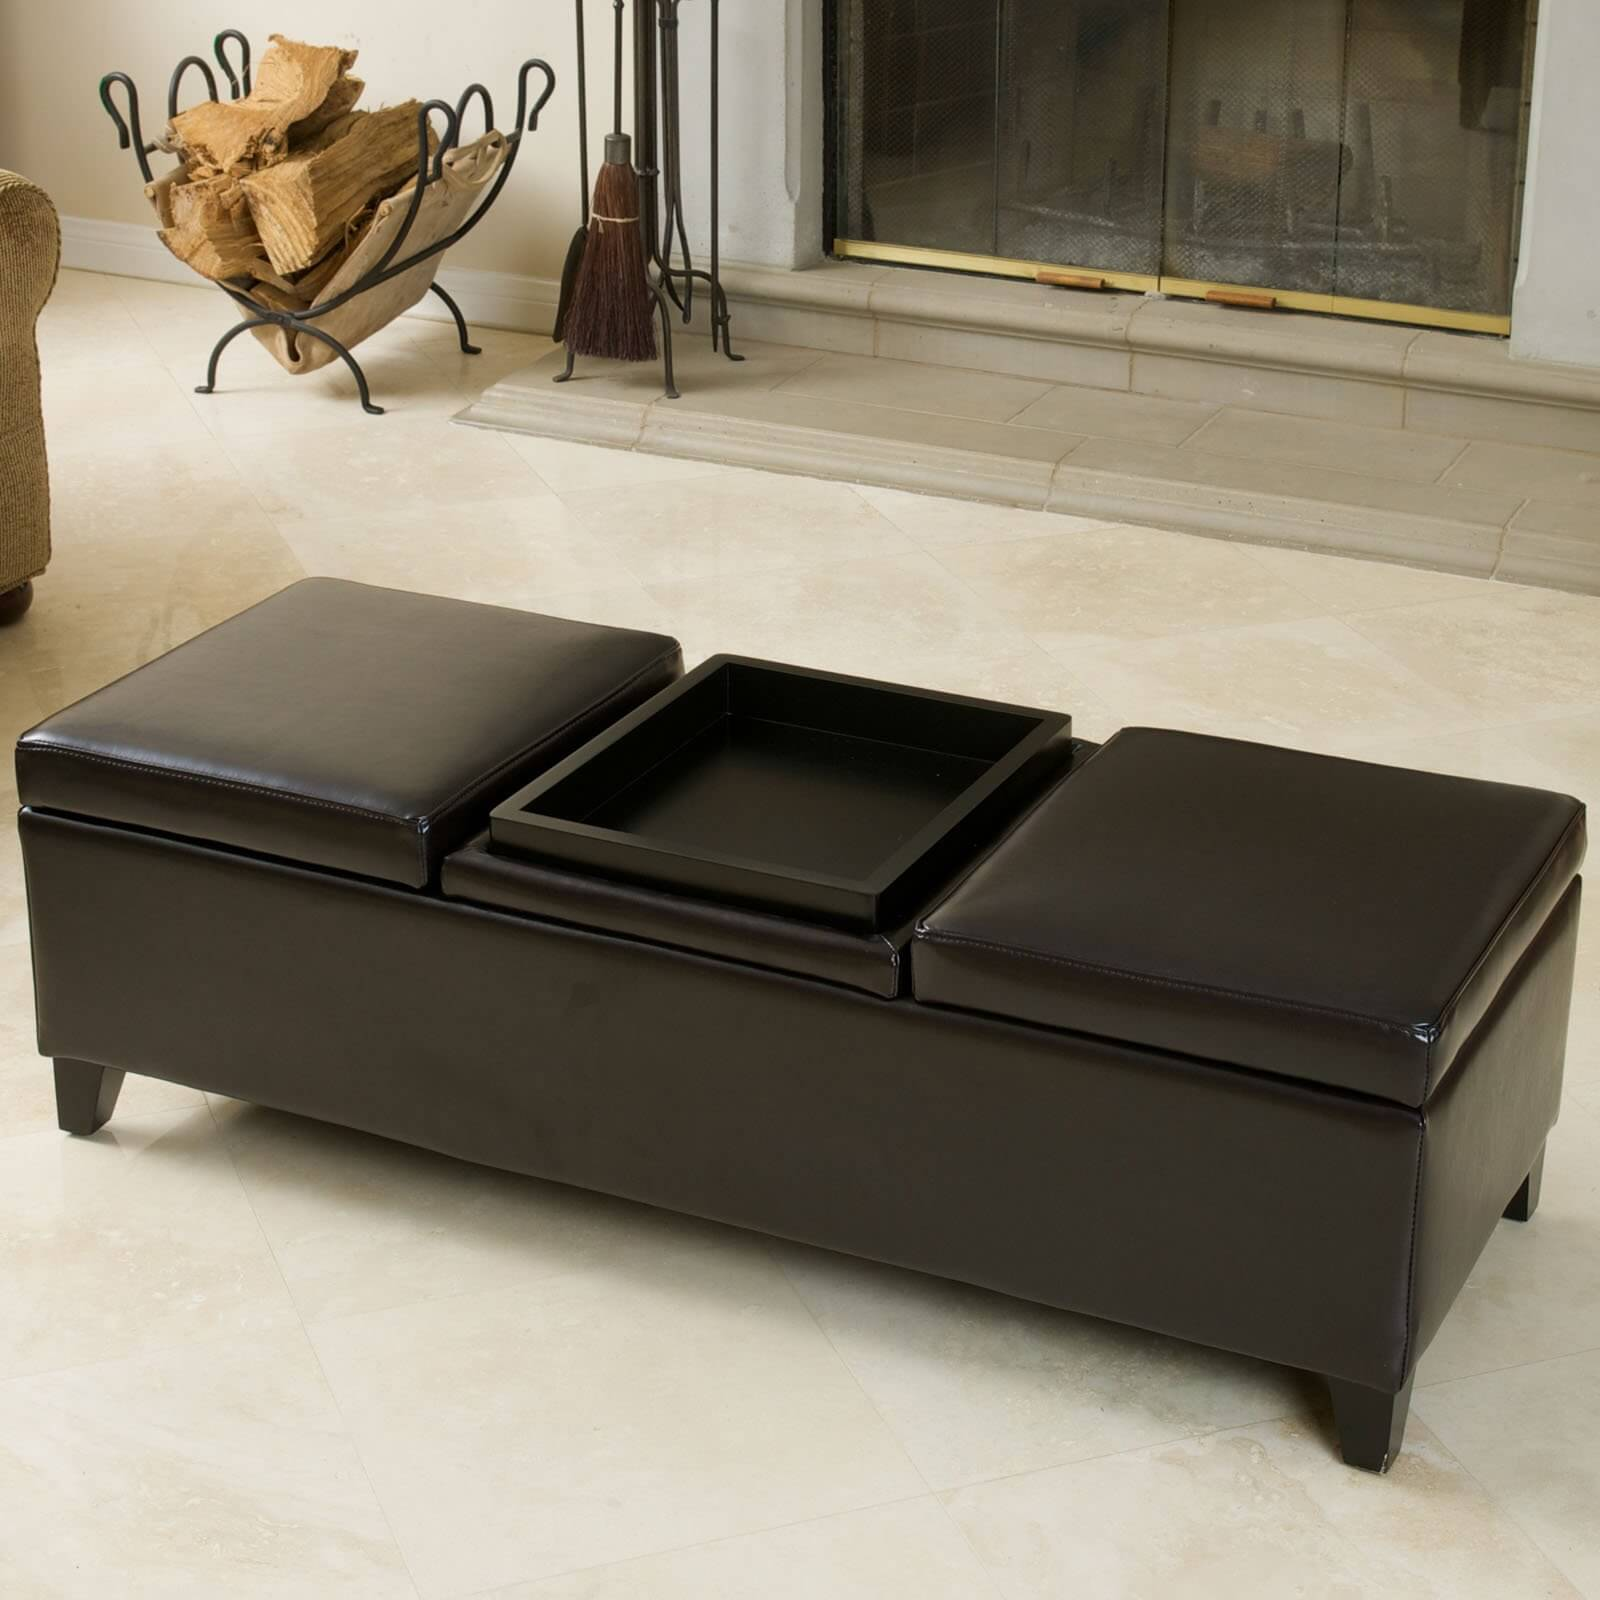 Superieur This Triple Topped Bench Ottoman Features Flippable Center Cushion For Tray  Table, With Storage .